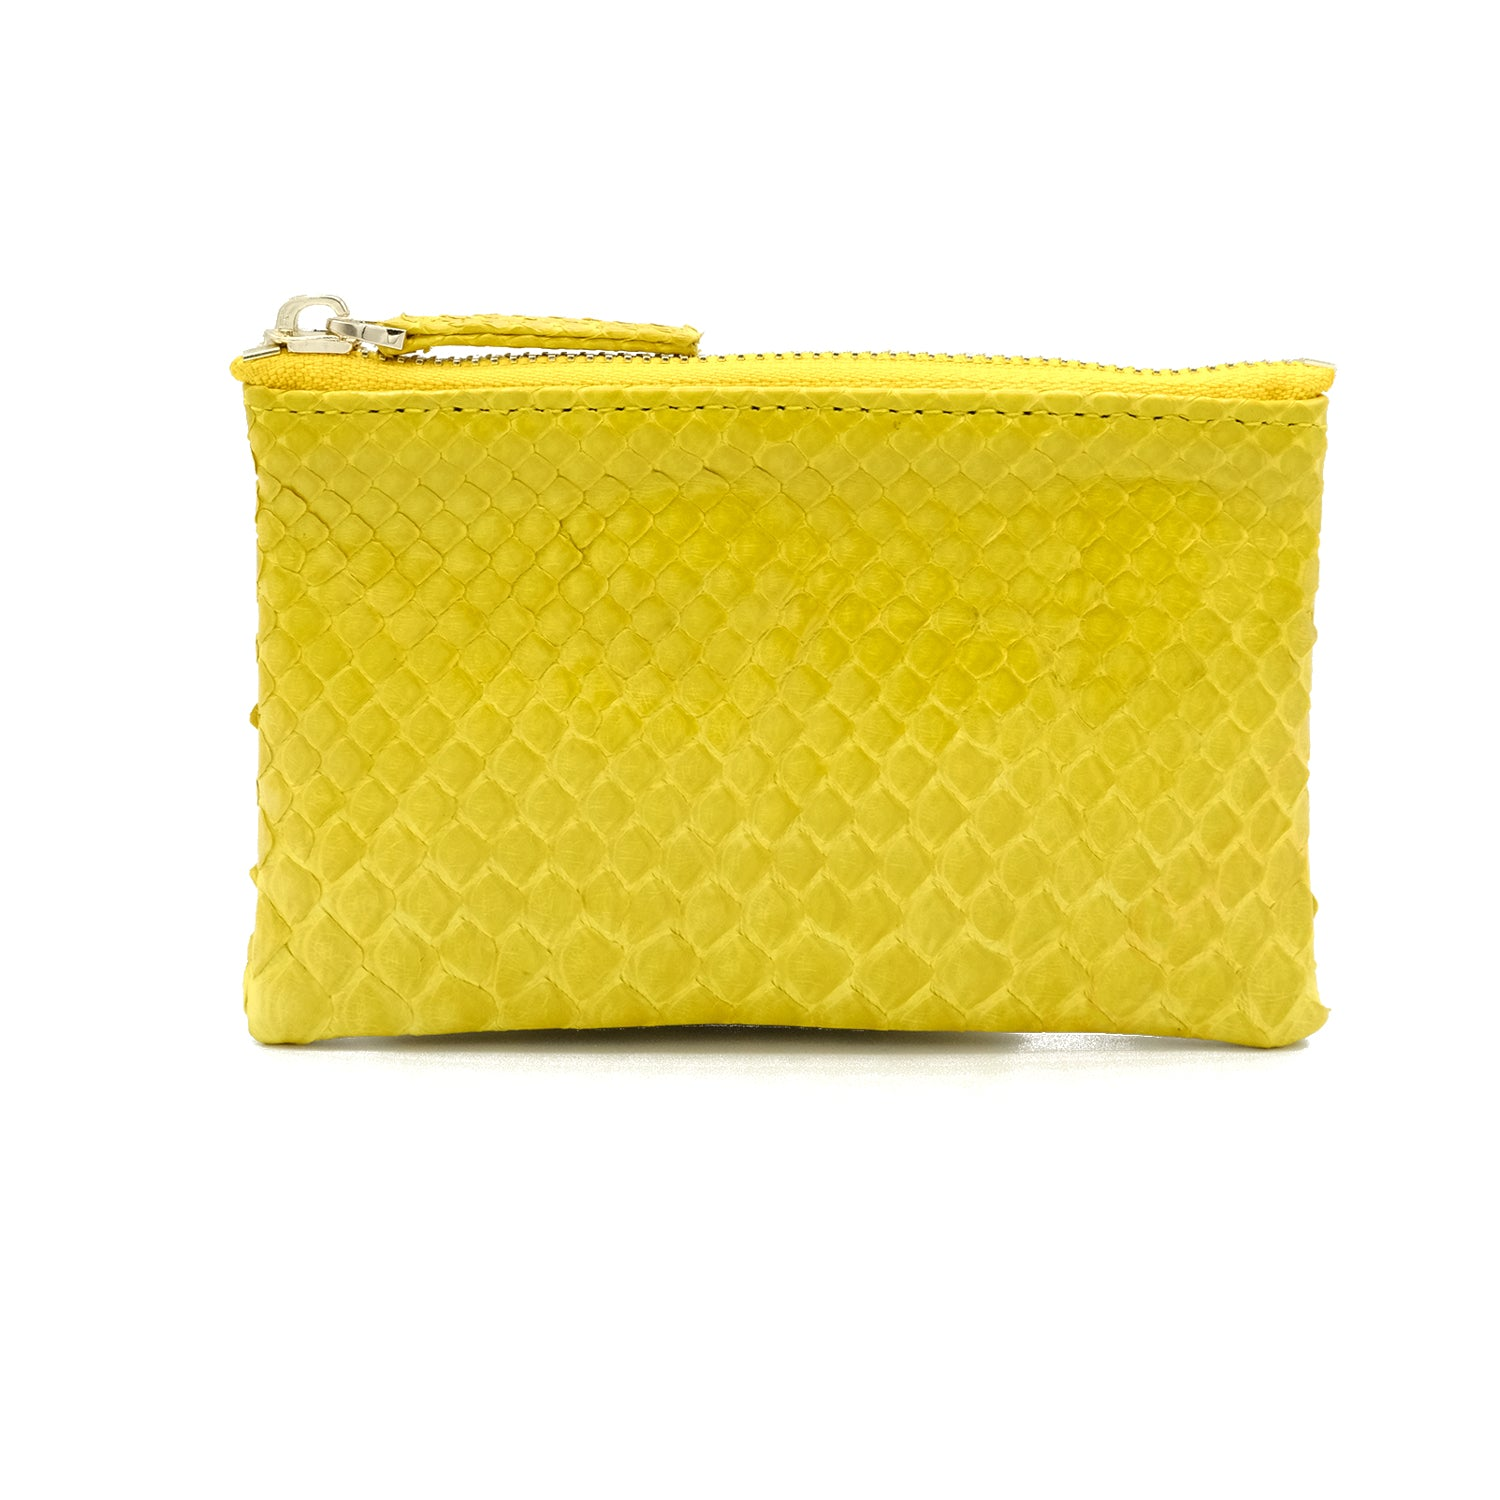 Snakeskin & Python Yellow Coin Purse or Zip Pouch | Urban Story